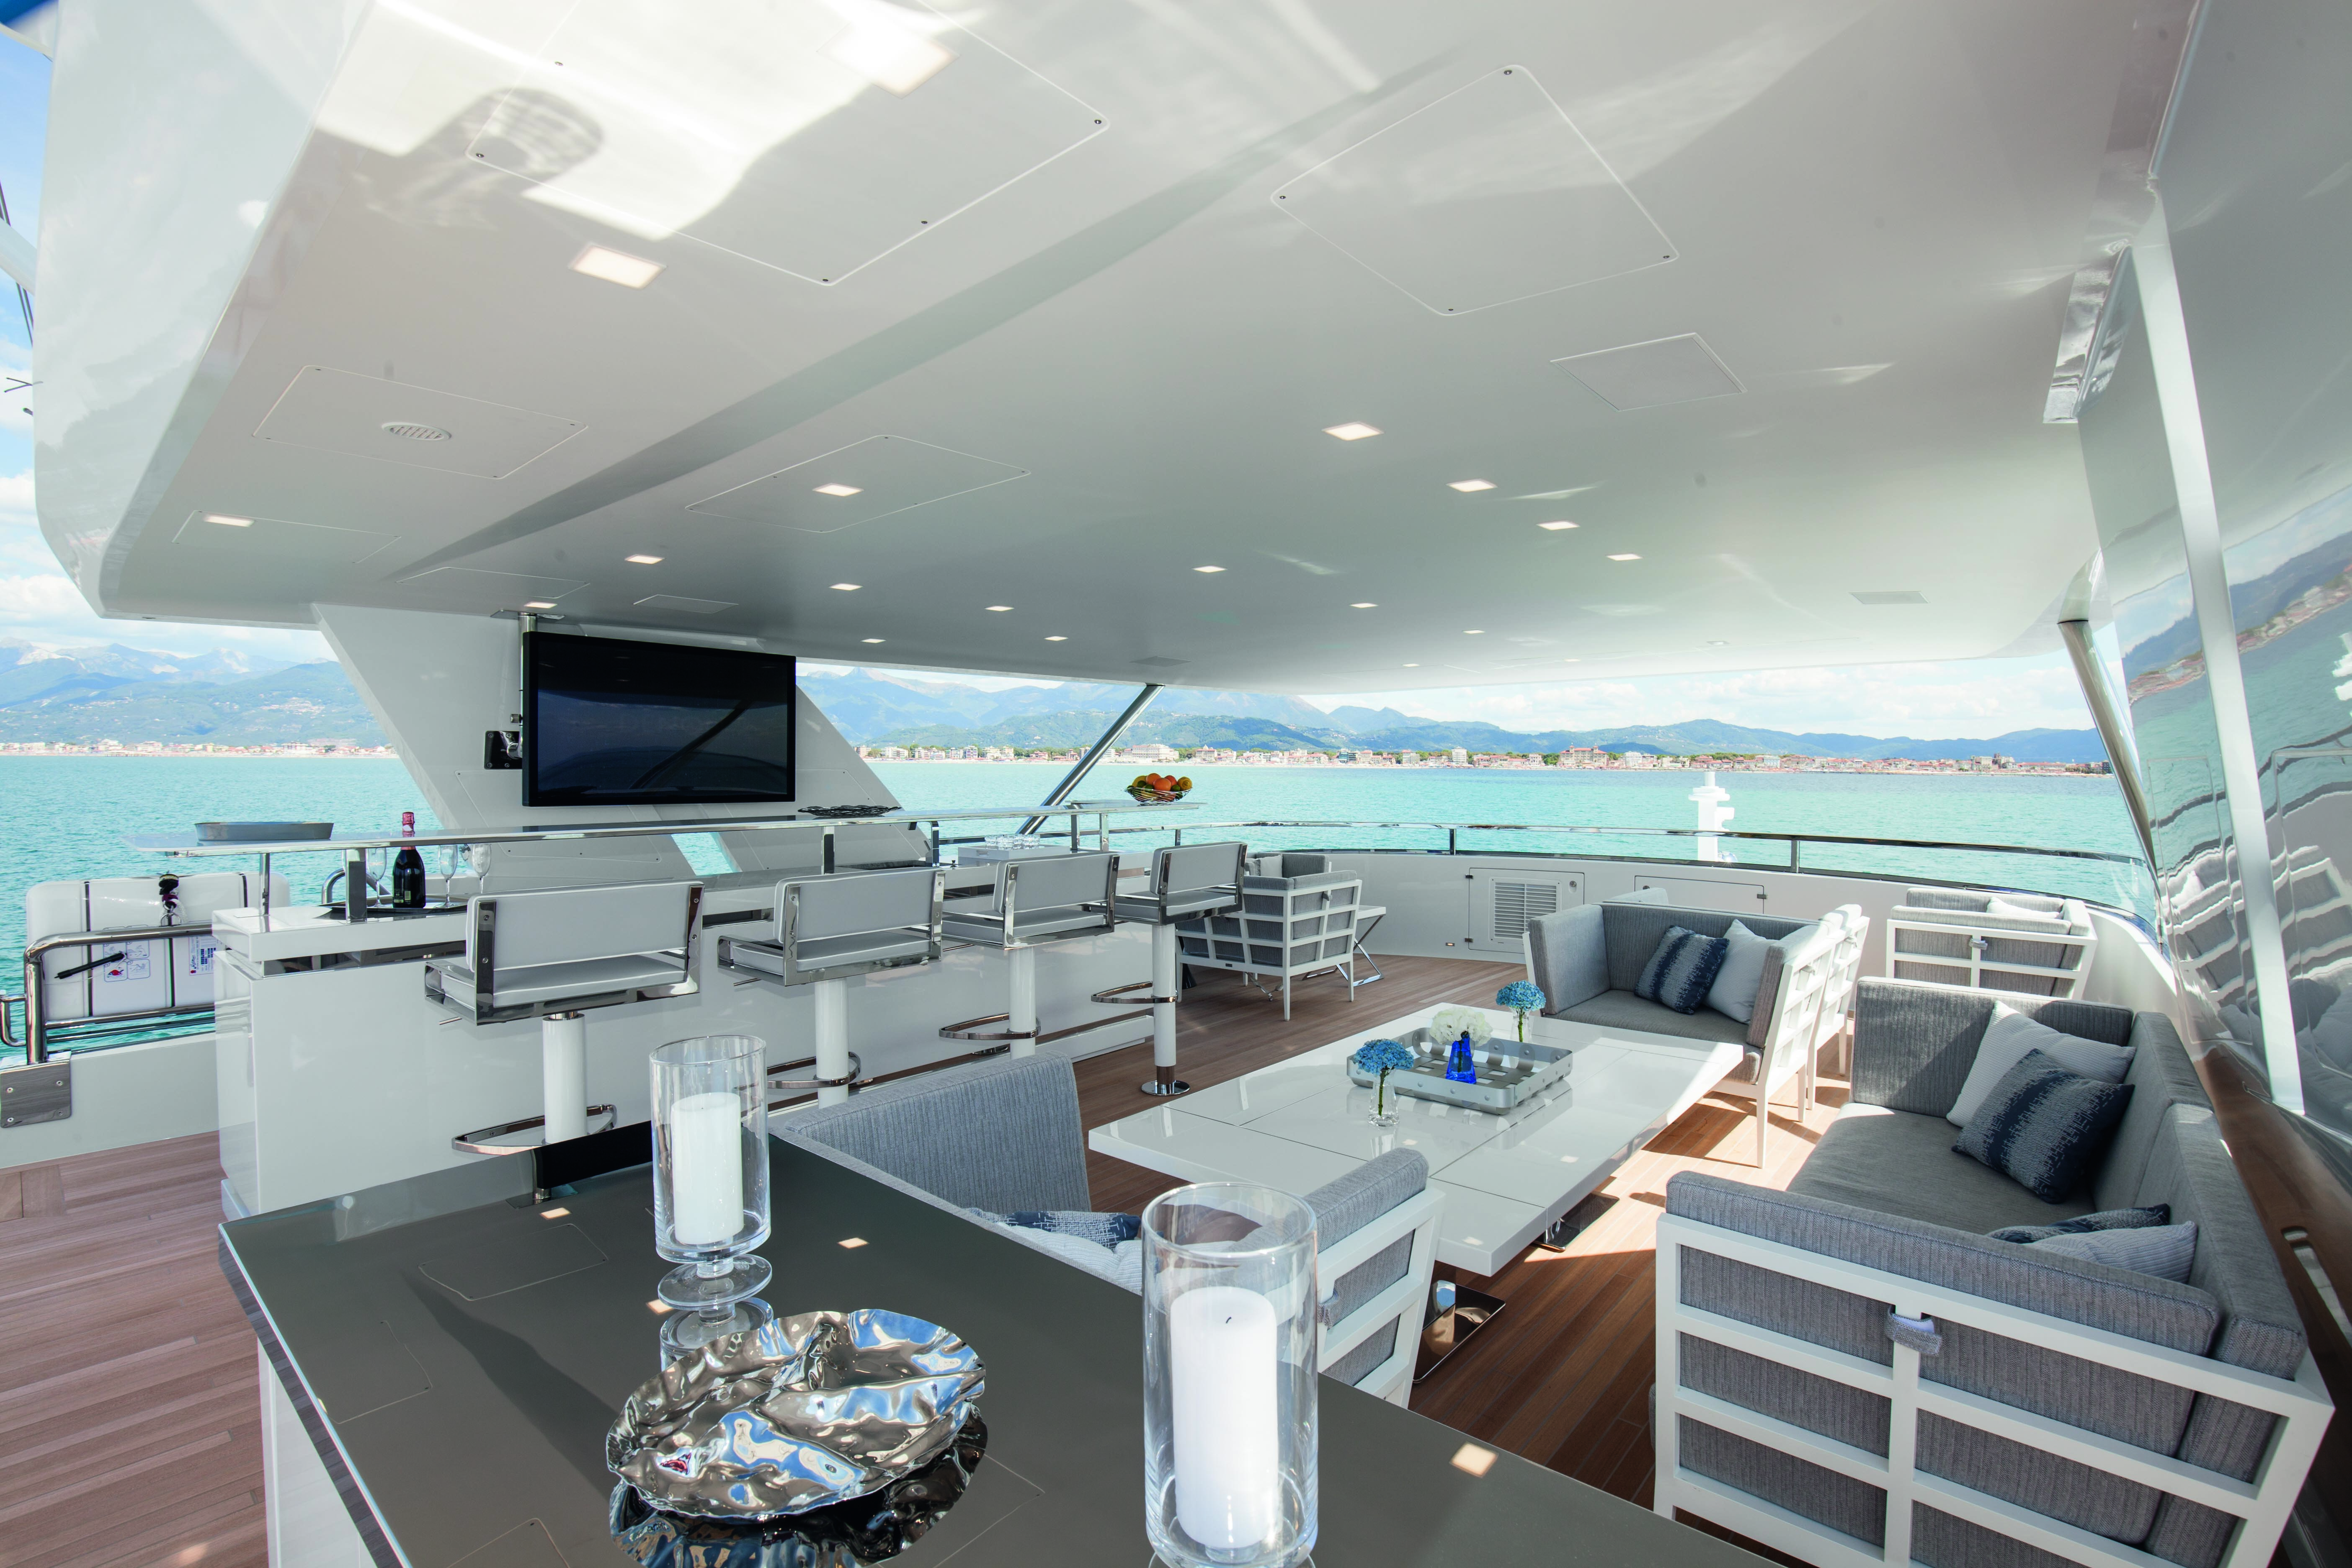 Superyacht H - Sundeck bar and lounging area